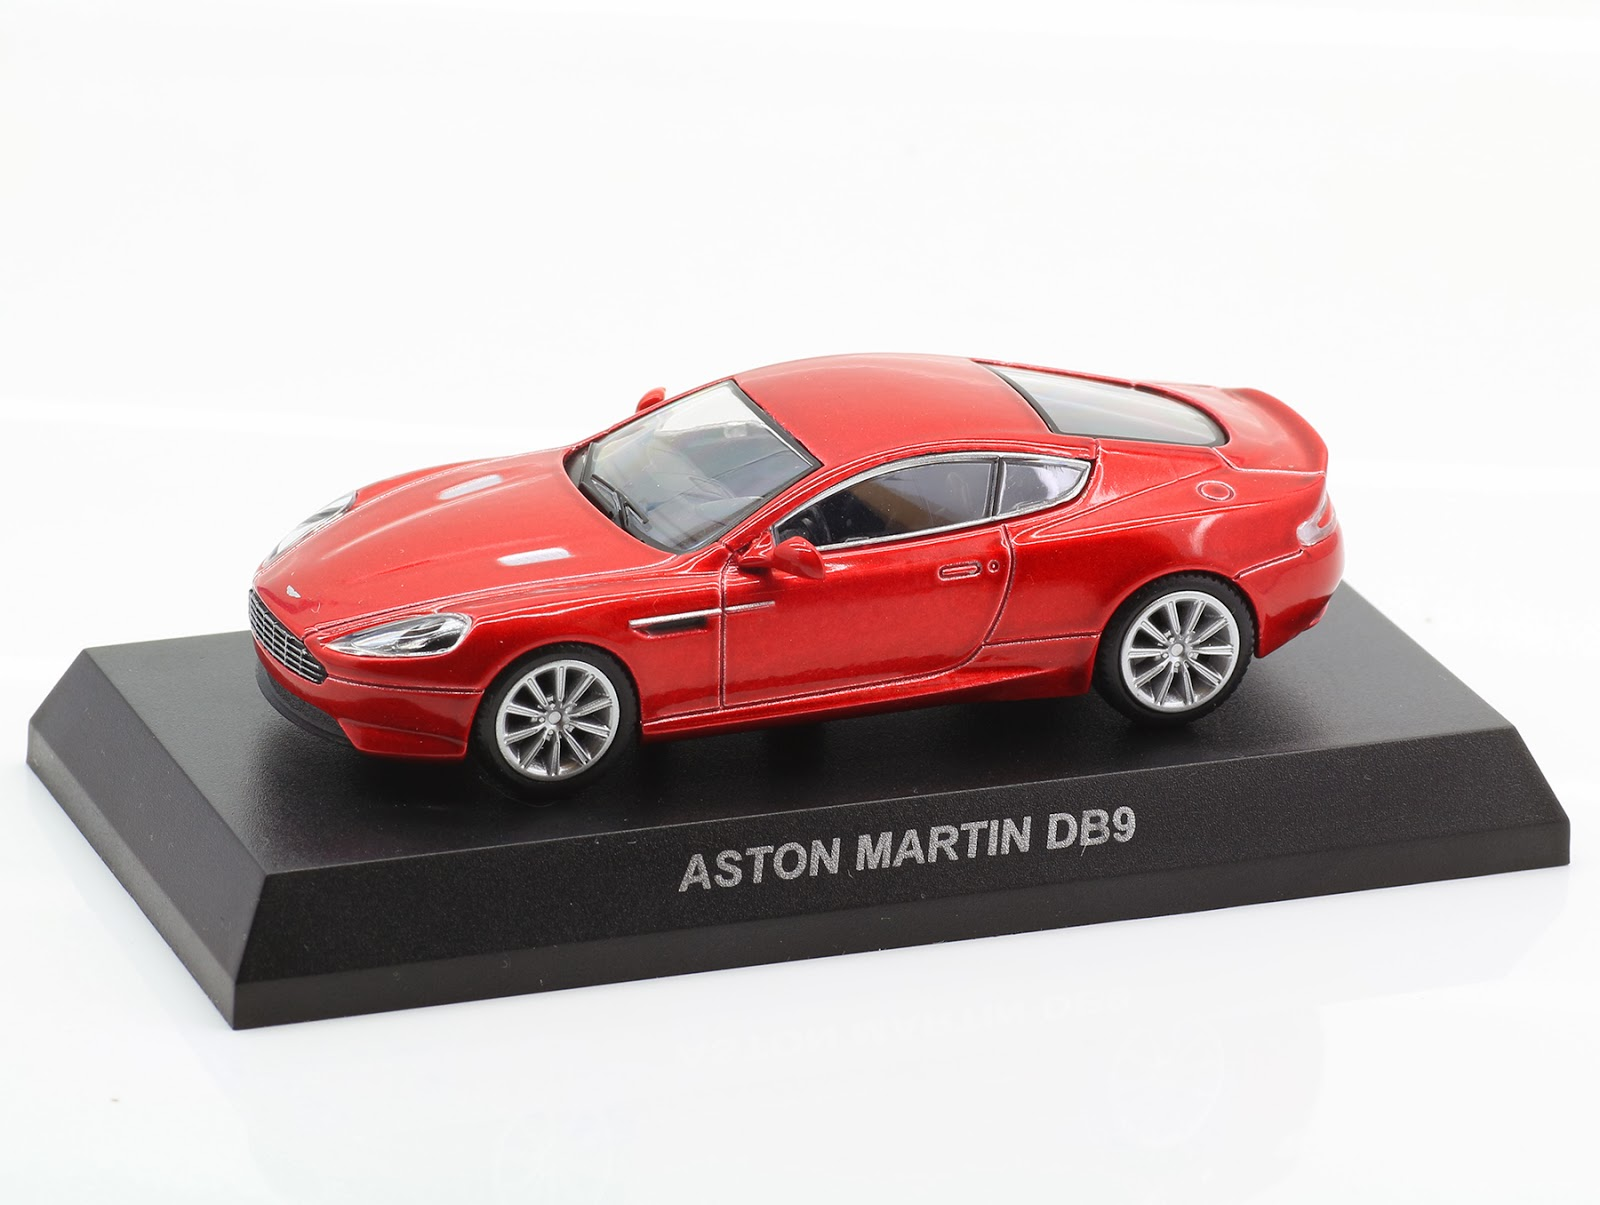 incredible mini garage aston martin db9 2004 kyosho 1 64. Black Bedroom Furniture Sets. Home Design Ideas